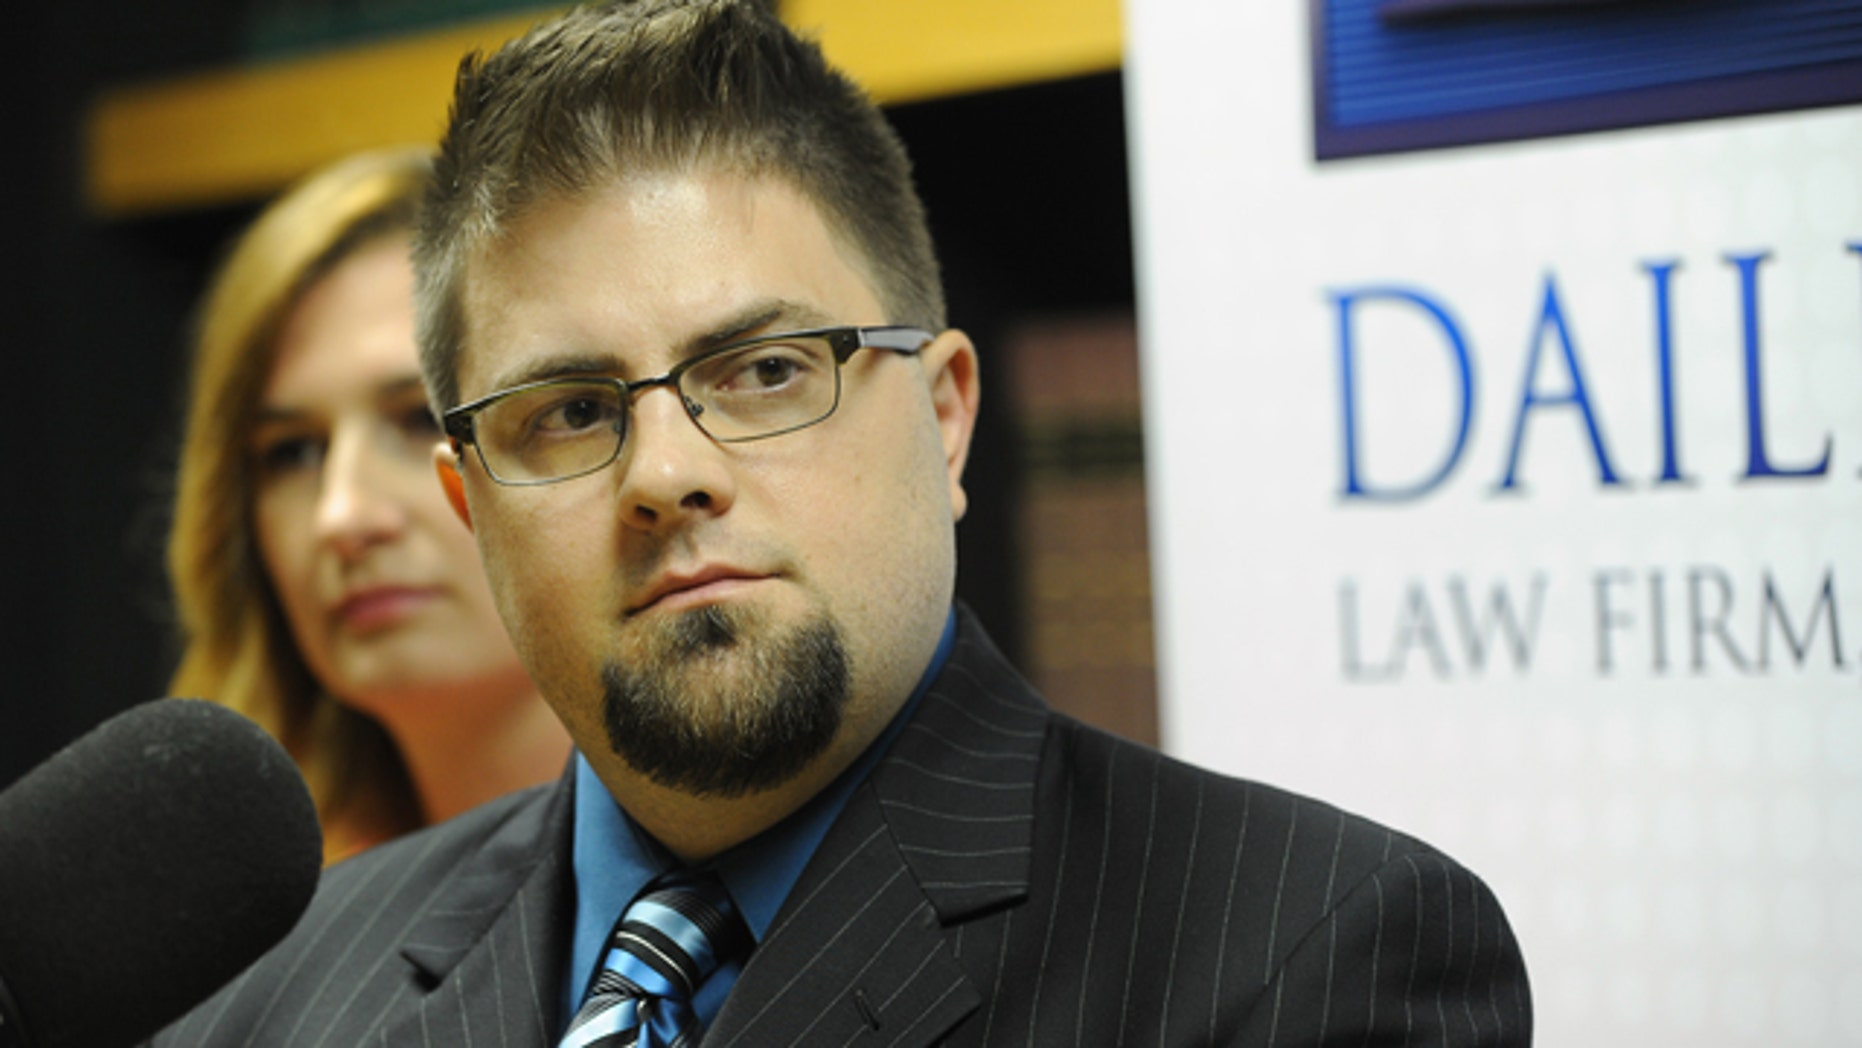 Aug. 17, 2015: Joshua Cline, former aide to Michigan state Reps. Todd Courser and Cindy Gamrat, talks about the scandal engulfing them during a news conference at Dailey Law Firm , P.C. in Royal Oak, Mich. (Brandy Baker / The Detroit News via AP)